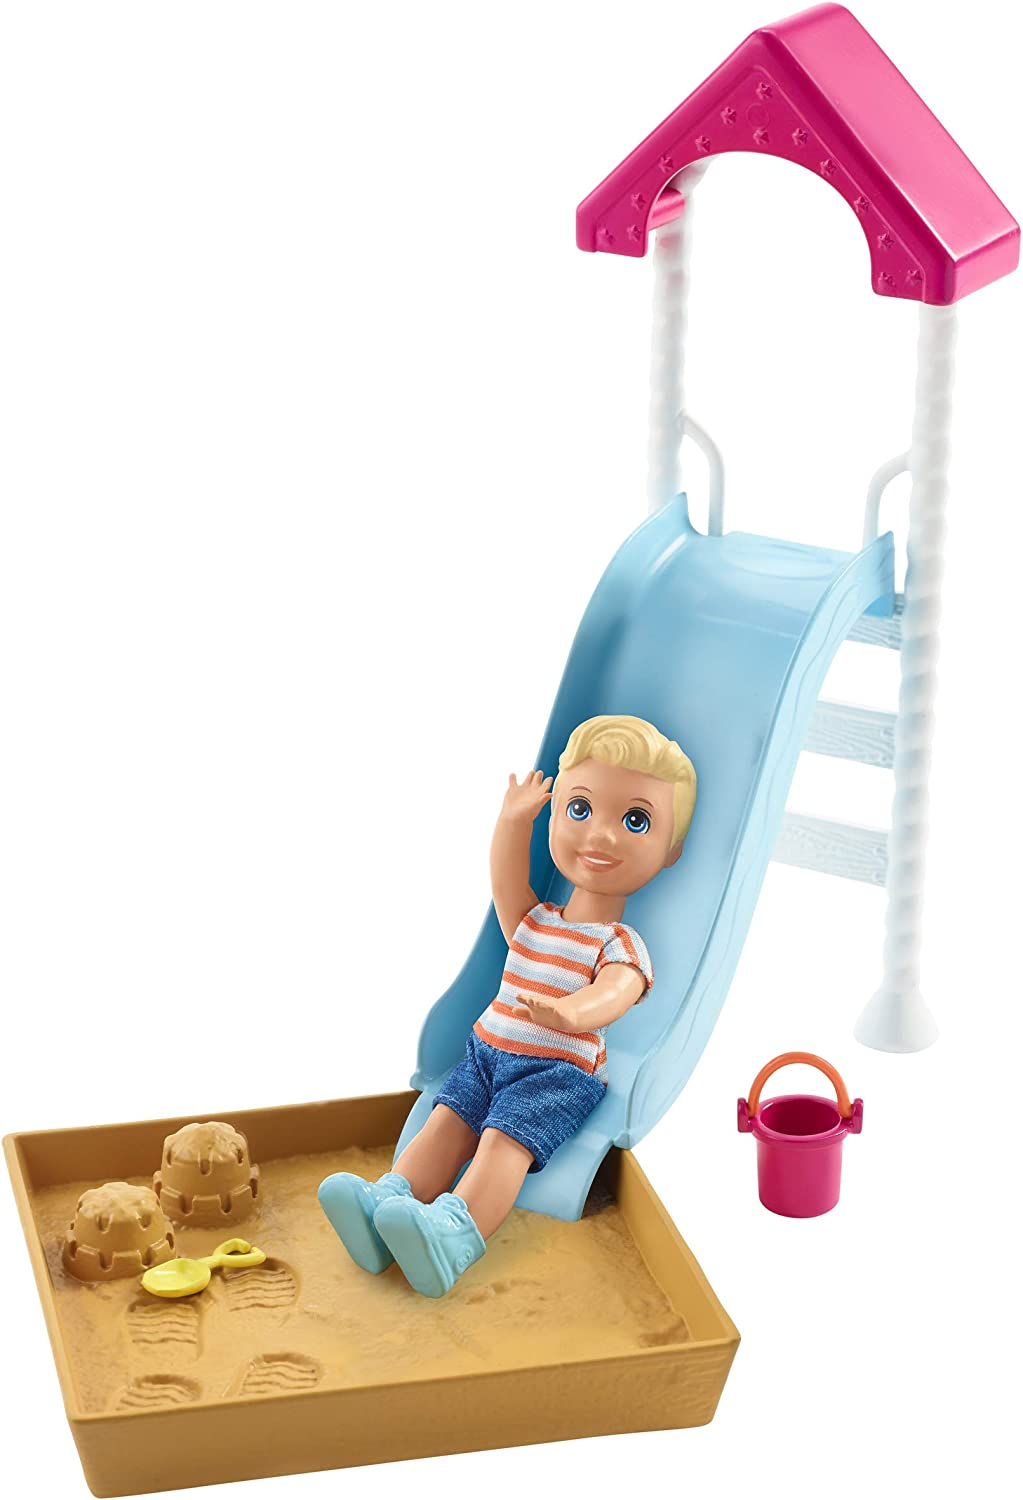 Barbie Skipper Babysitters Inc. Doll and Playset, Small Toddler Doll and Playground Piece with Slide and Sandbox, Plus Themed Accessories, Gift for 3 to 7 Year Olds???